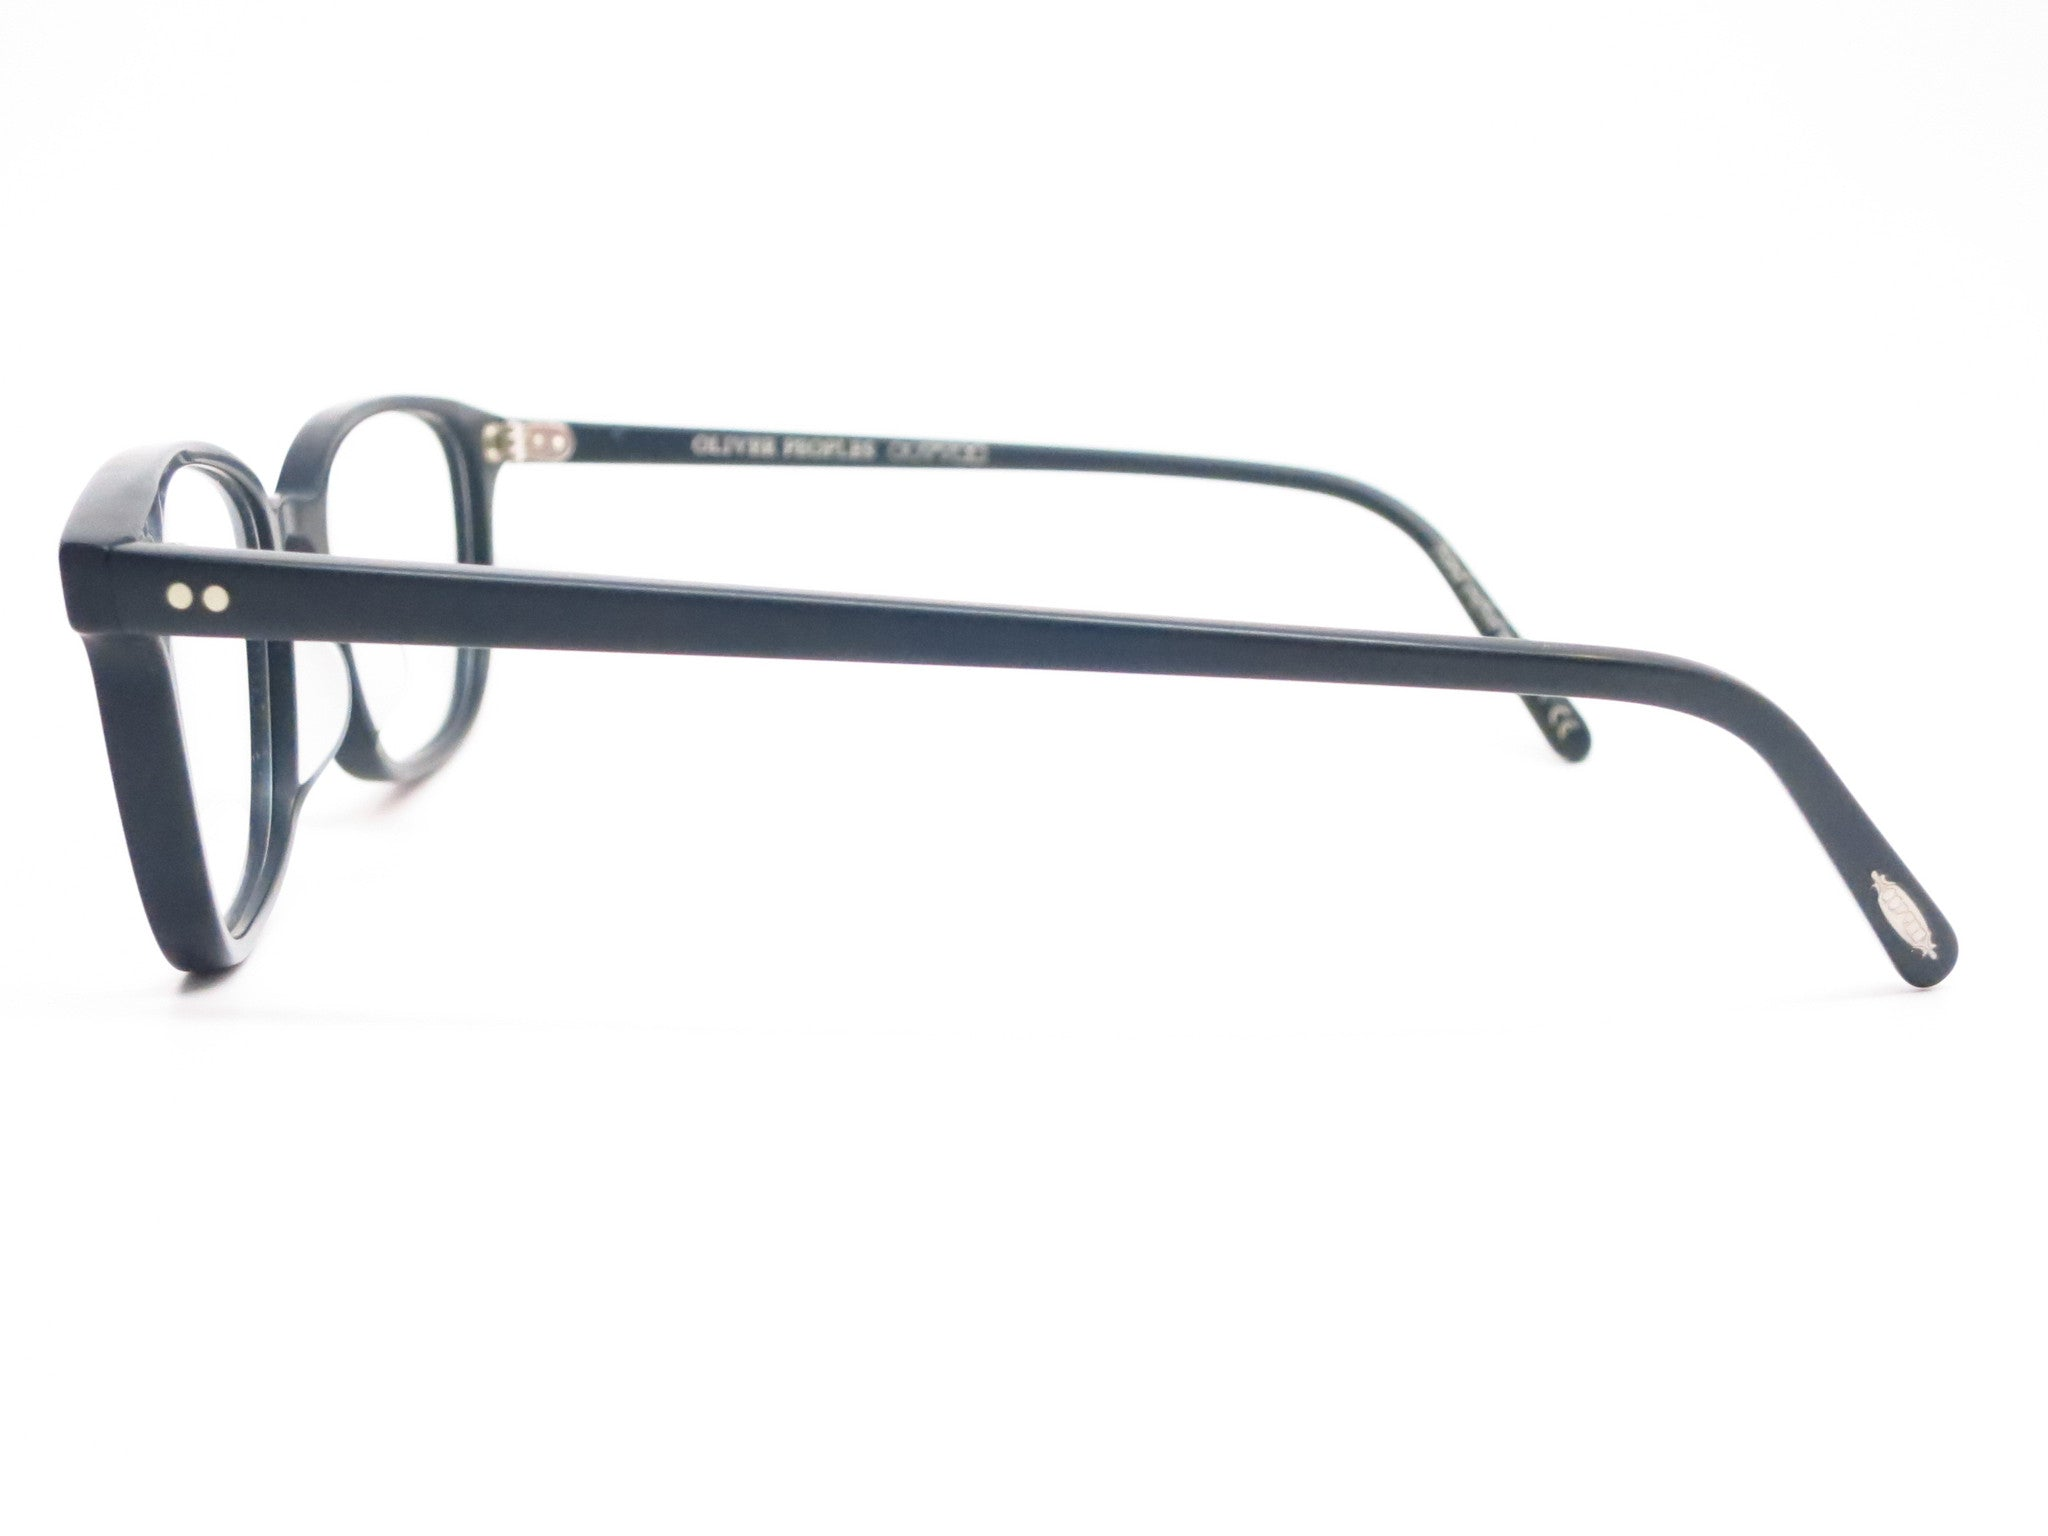 Oakley Glasses Frame Parts : Oakley Replacement Parts Eyewear Frames